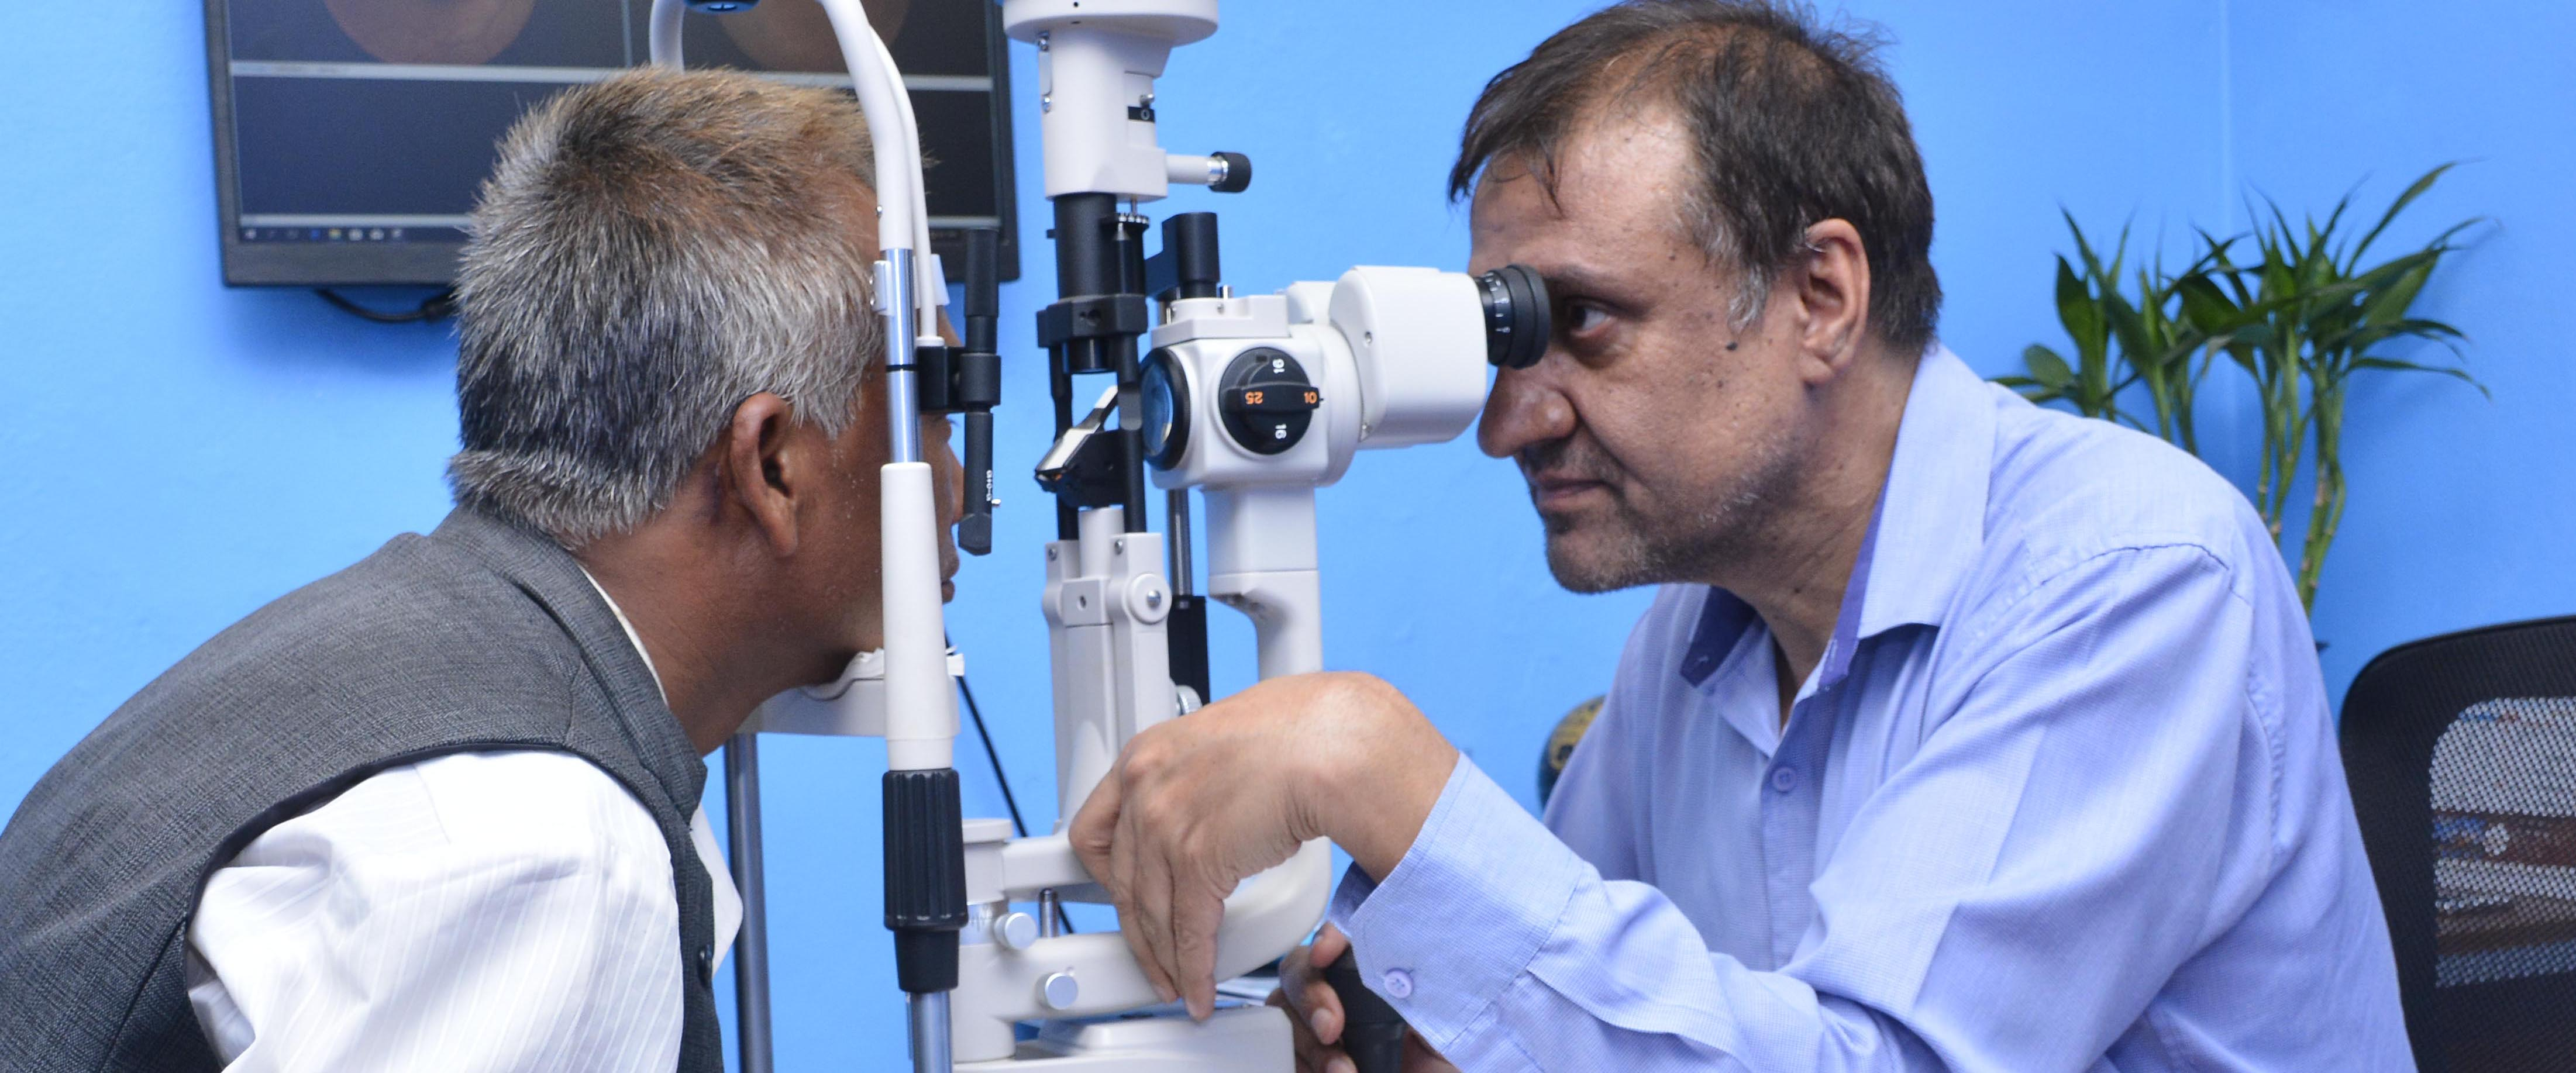 Retina Specialist Service at Metro Eye Care